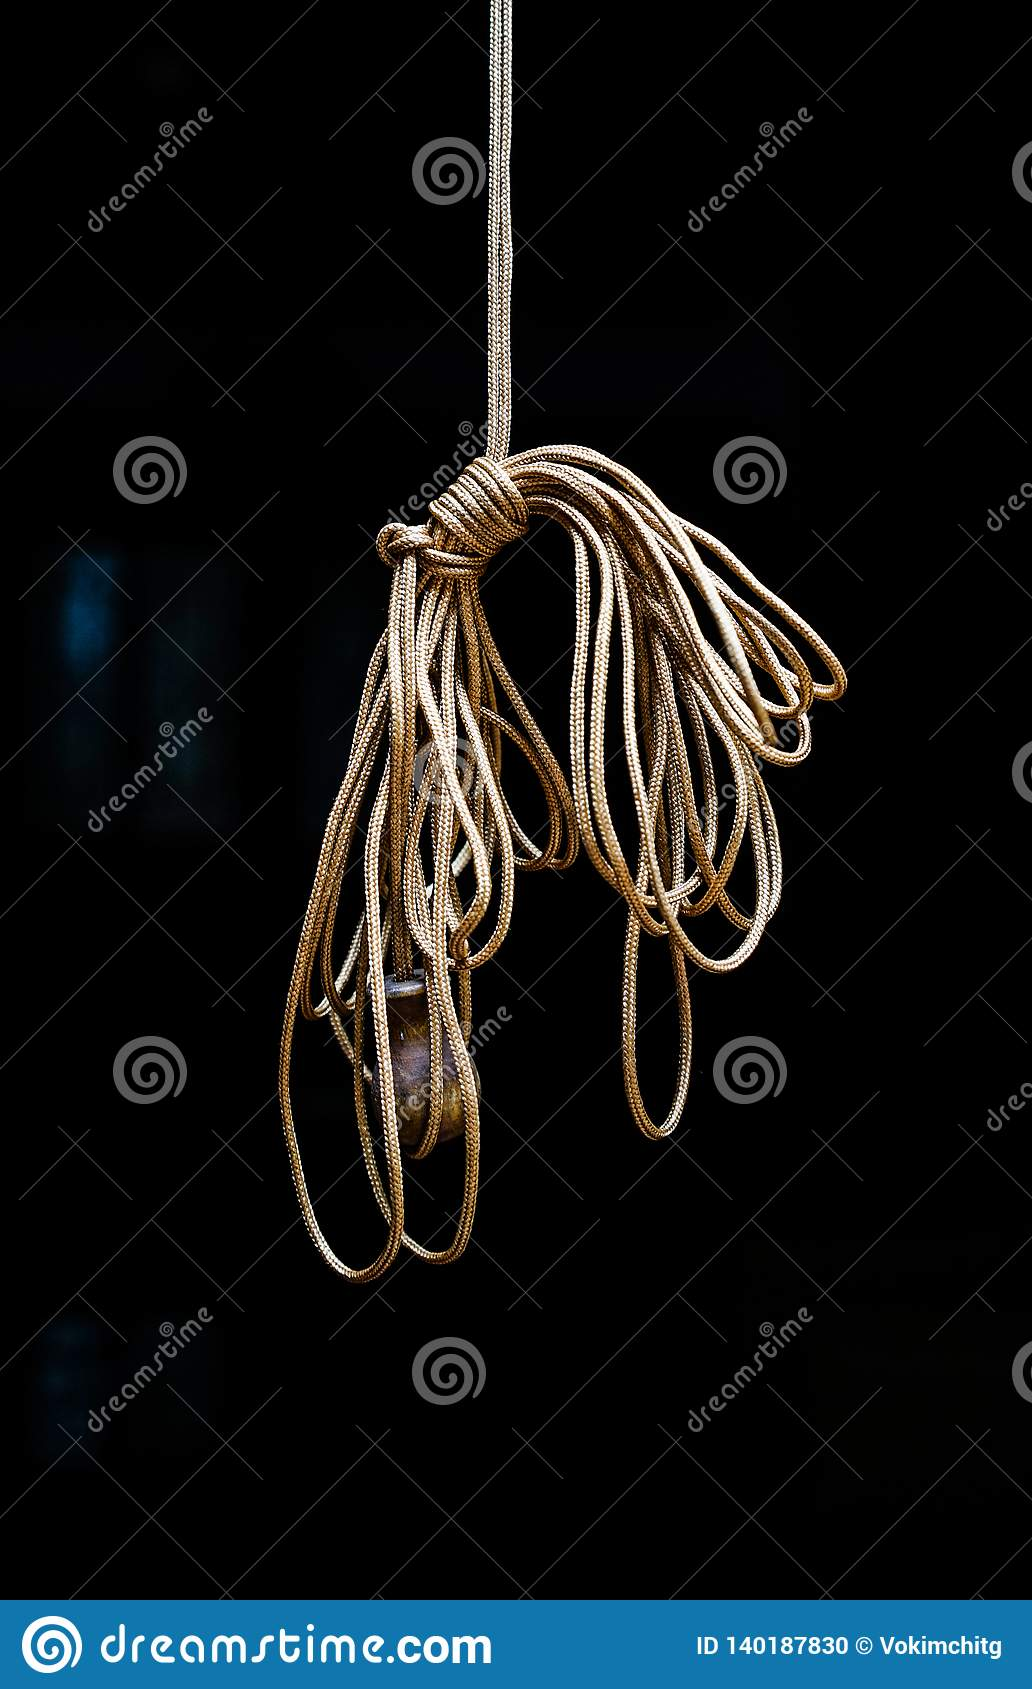 Rope knot on black background